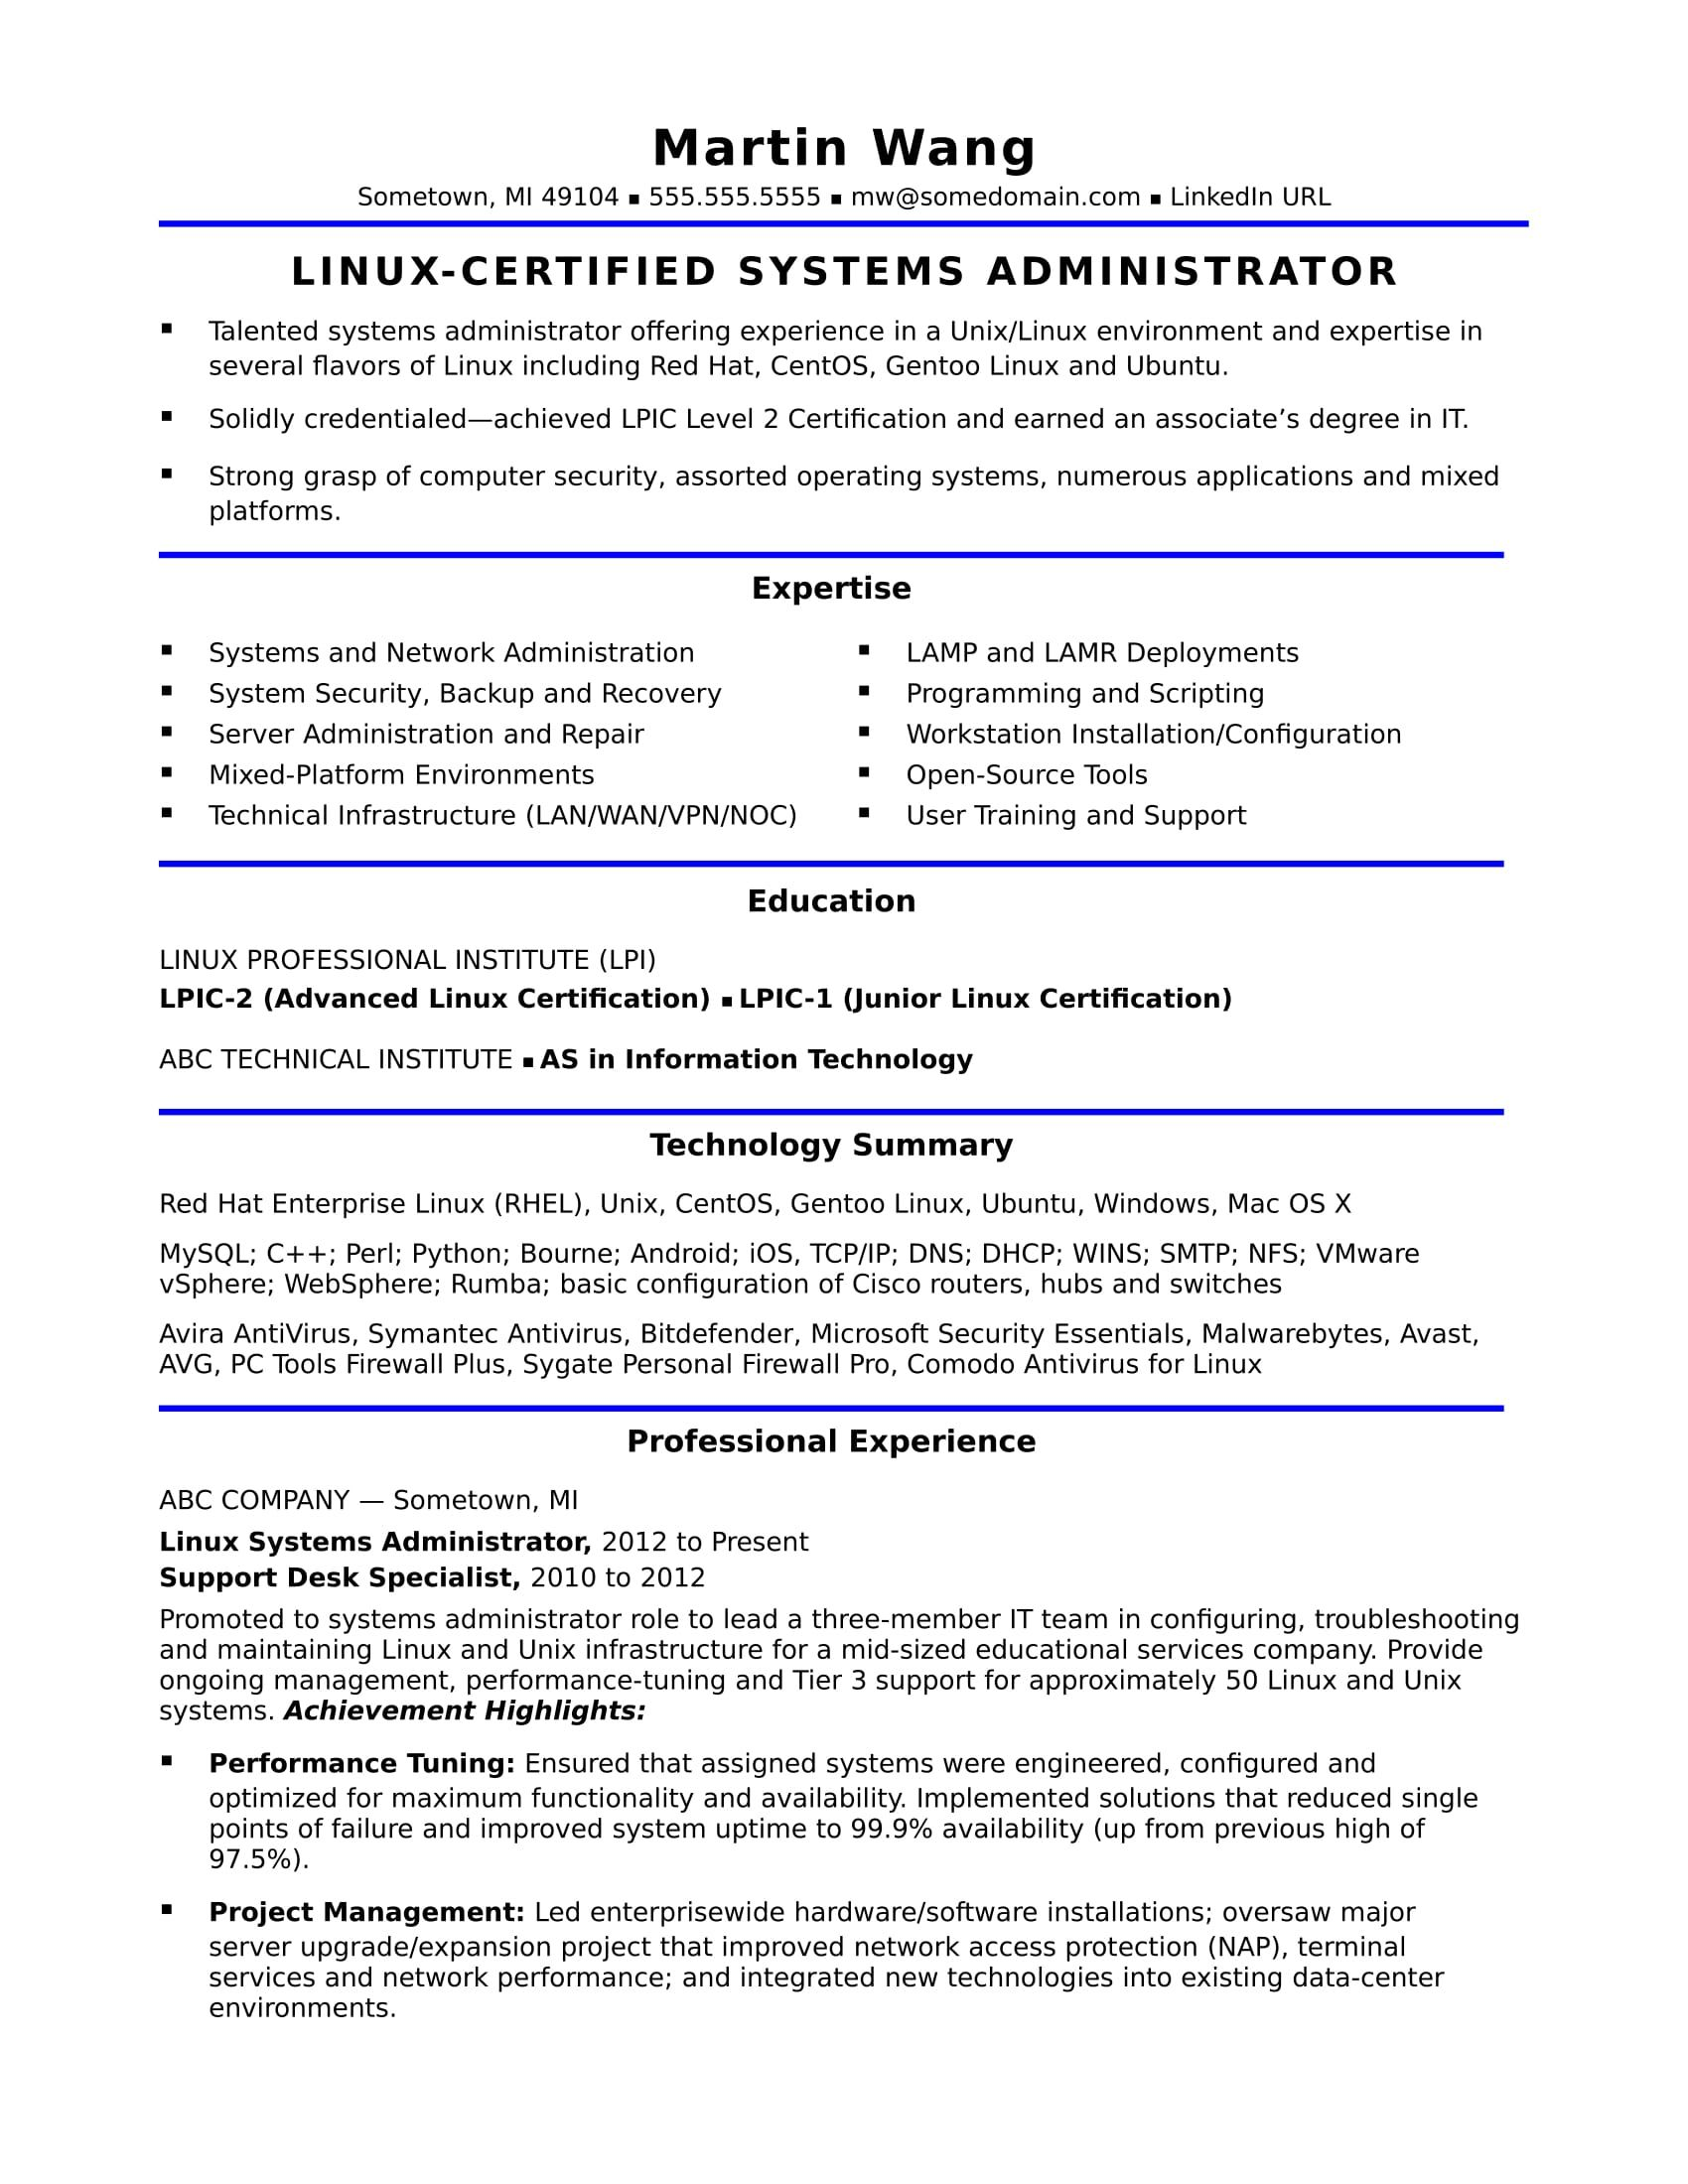 See This Sample Resume For A Midlevel Systems Adminstrator For Help Troubleshooting Your Own Sys Admin Resume Basic Resume Resume Examples Resume